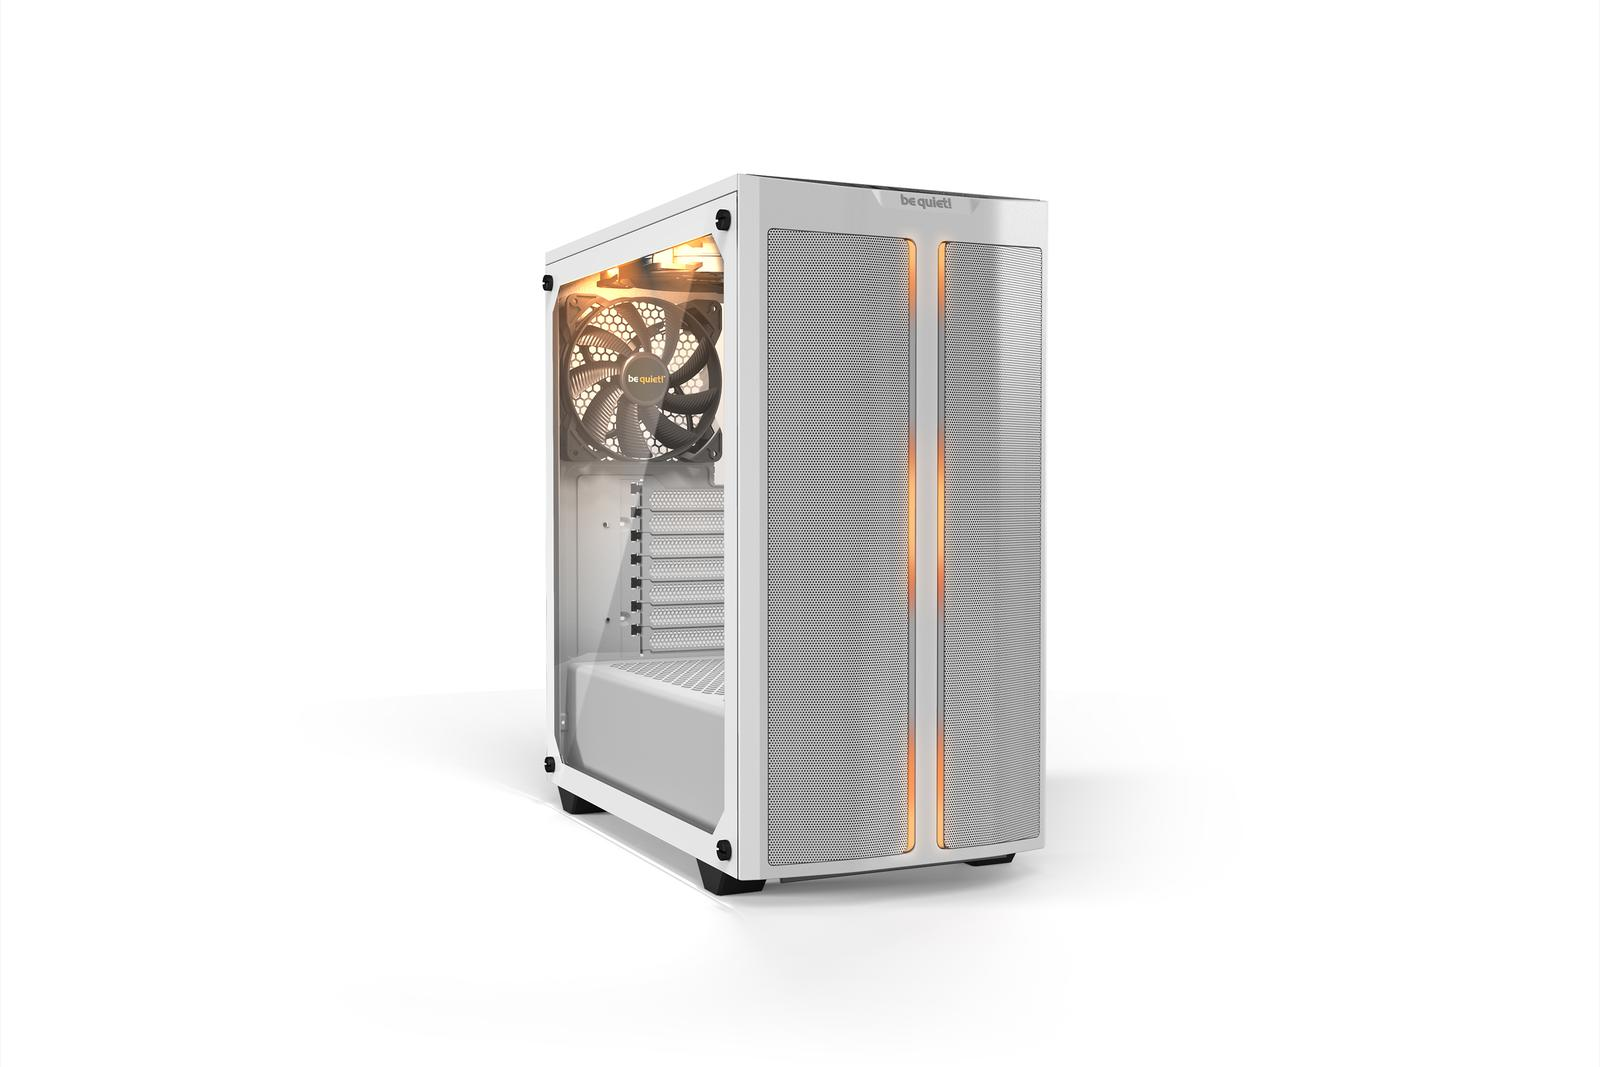 be quiet! Pure Base 500DX ATX Mid Tower Case